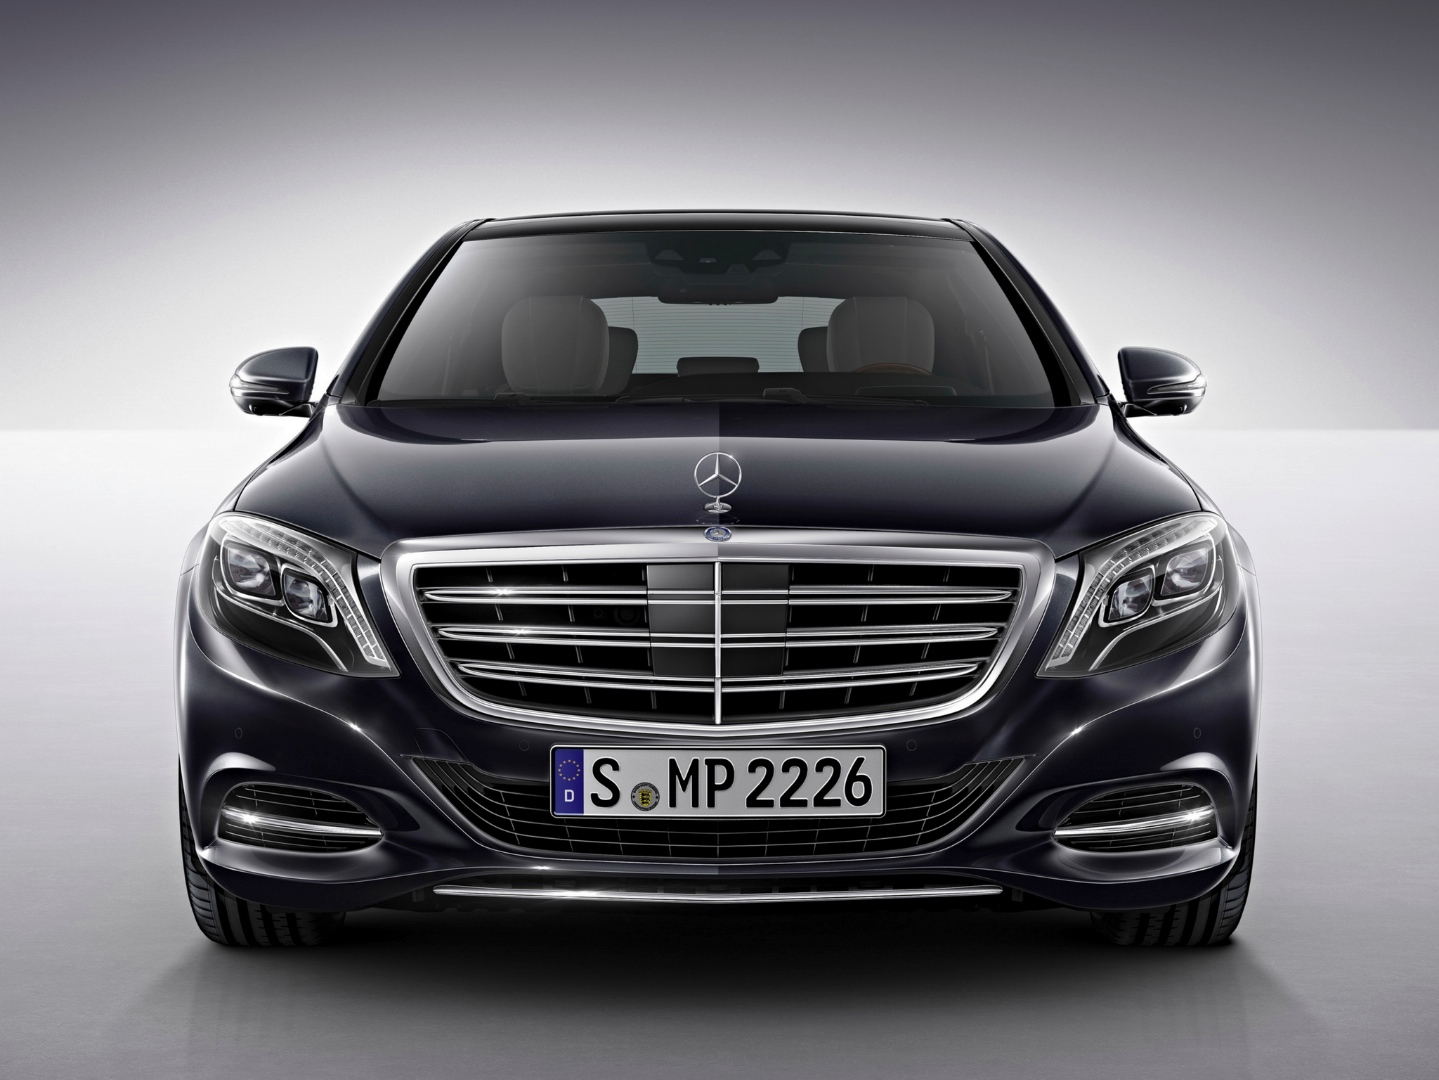 Mercedes benz usa continues record sales spree in january for Mercedes benz usa models